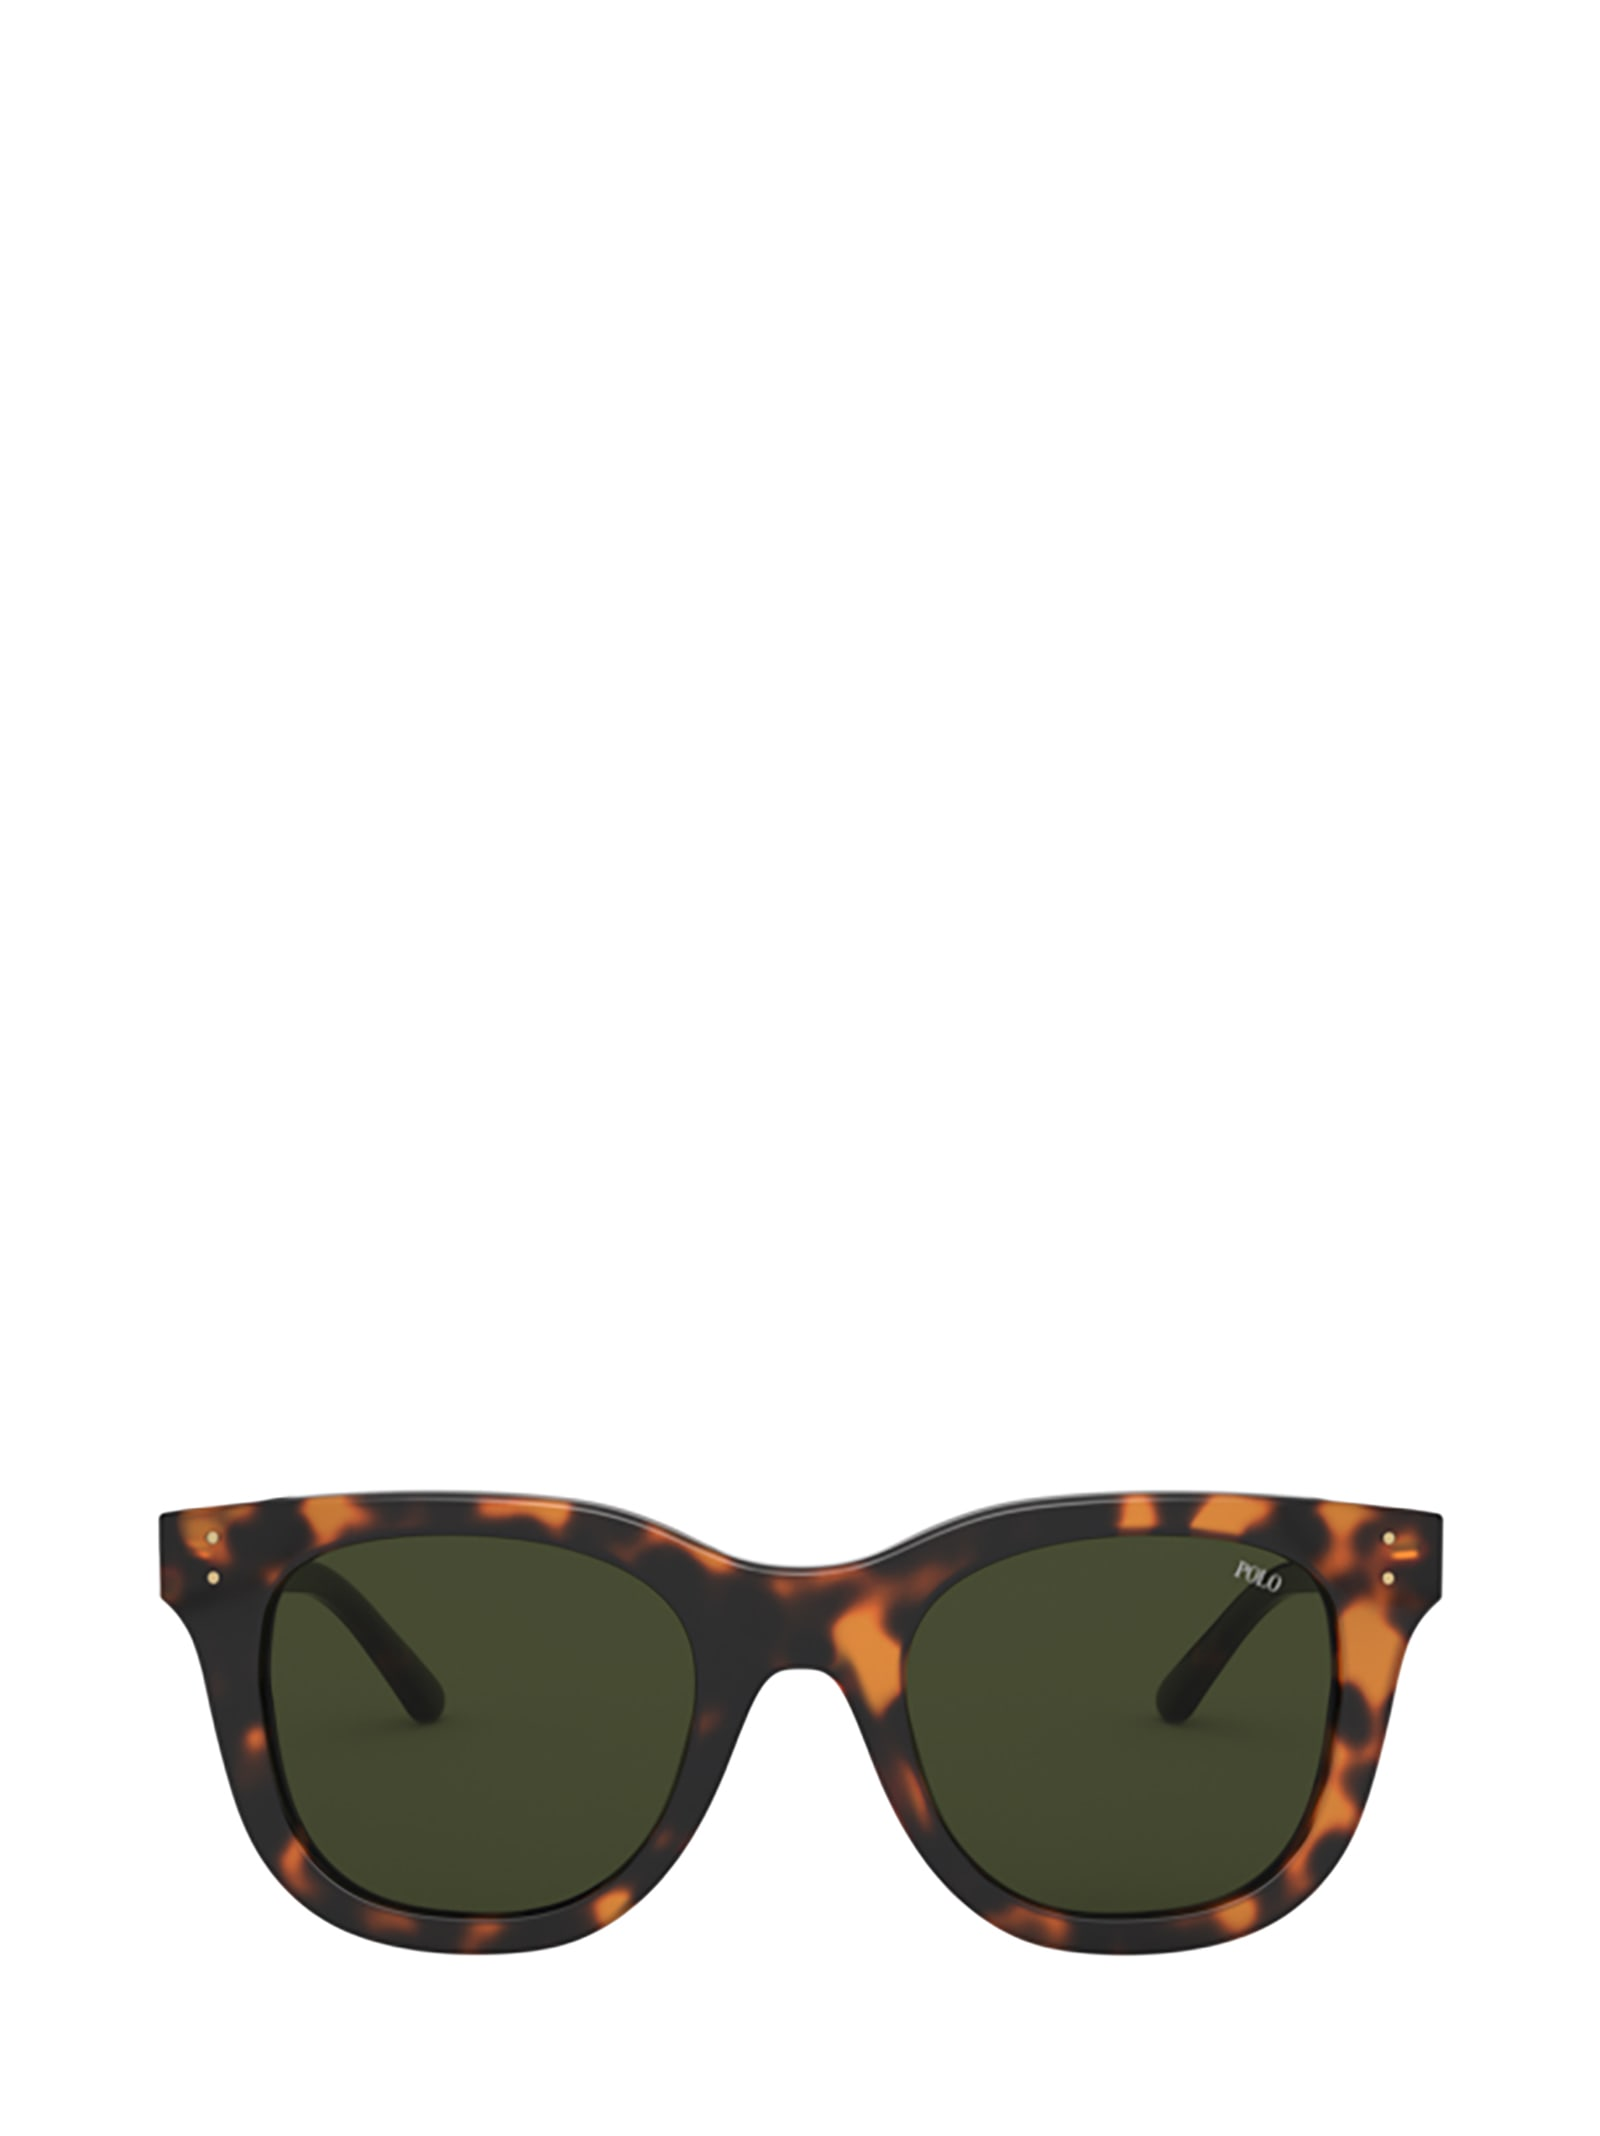 Polo Ralph Lauren Polo Ralph Lauren Ph4160 530371 Sunglasses